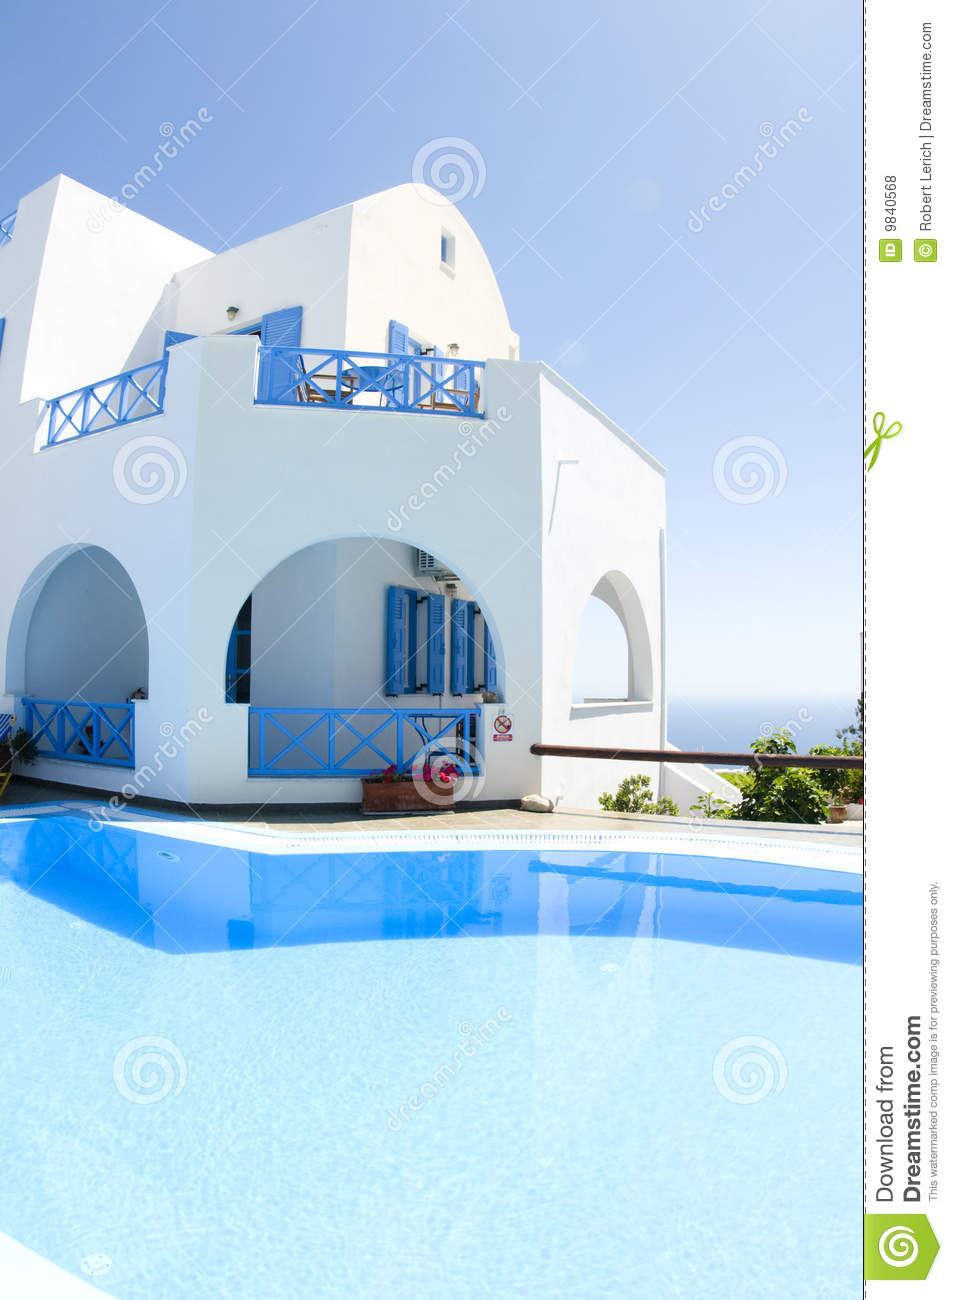 Piscine d 39 architecture grecque de cyclades photos libres for Architecture grecque